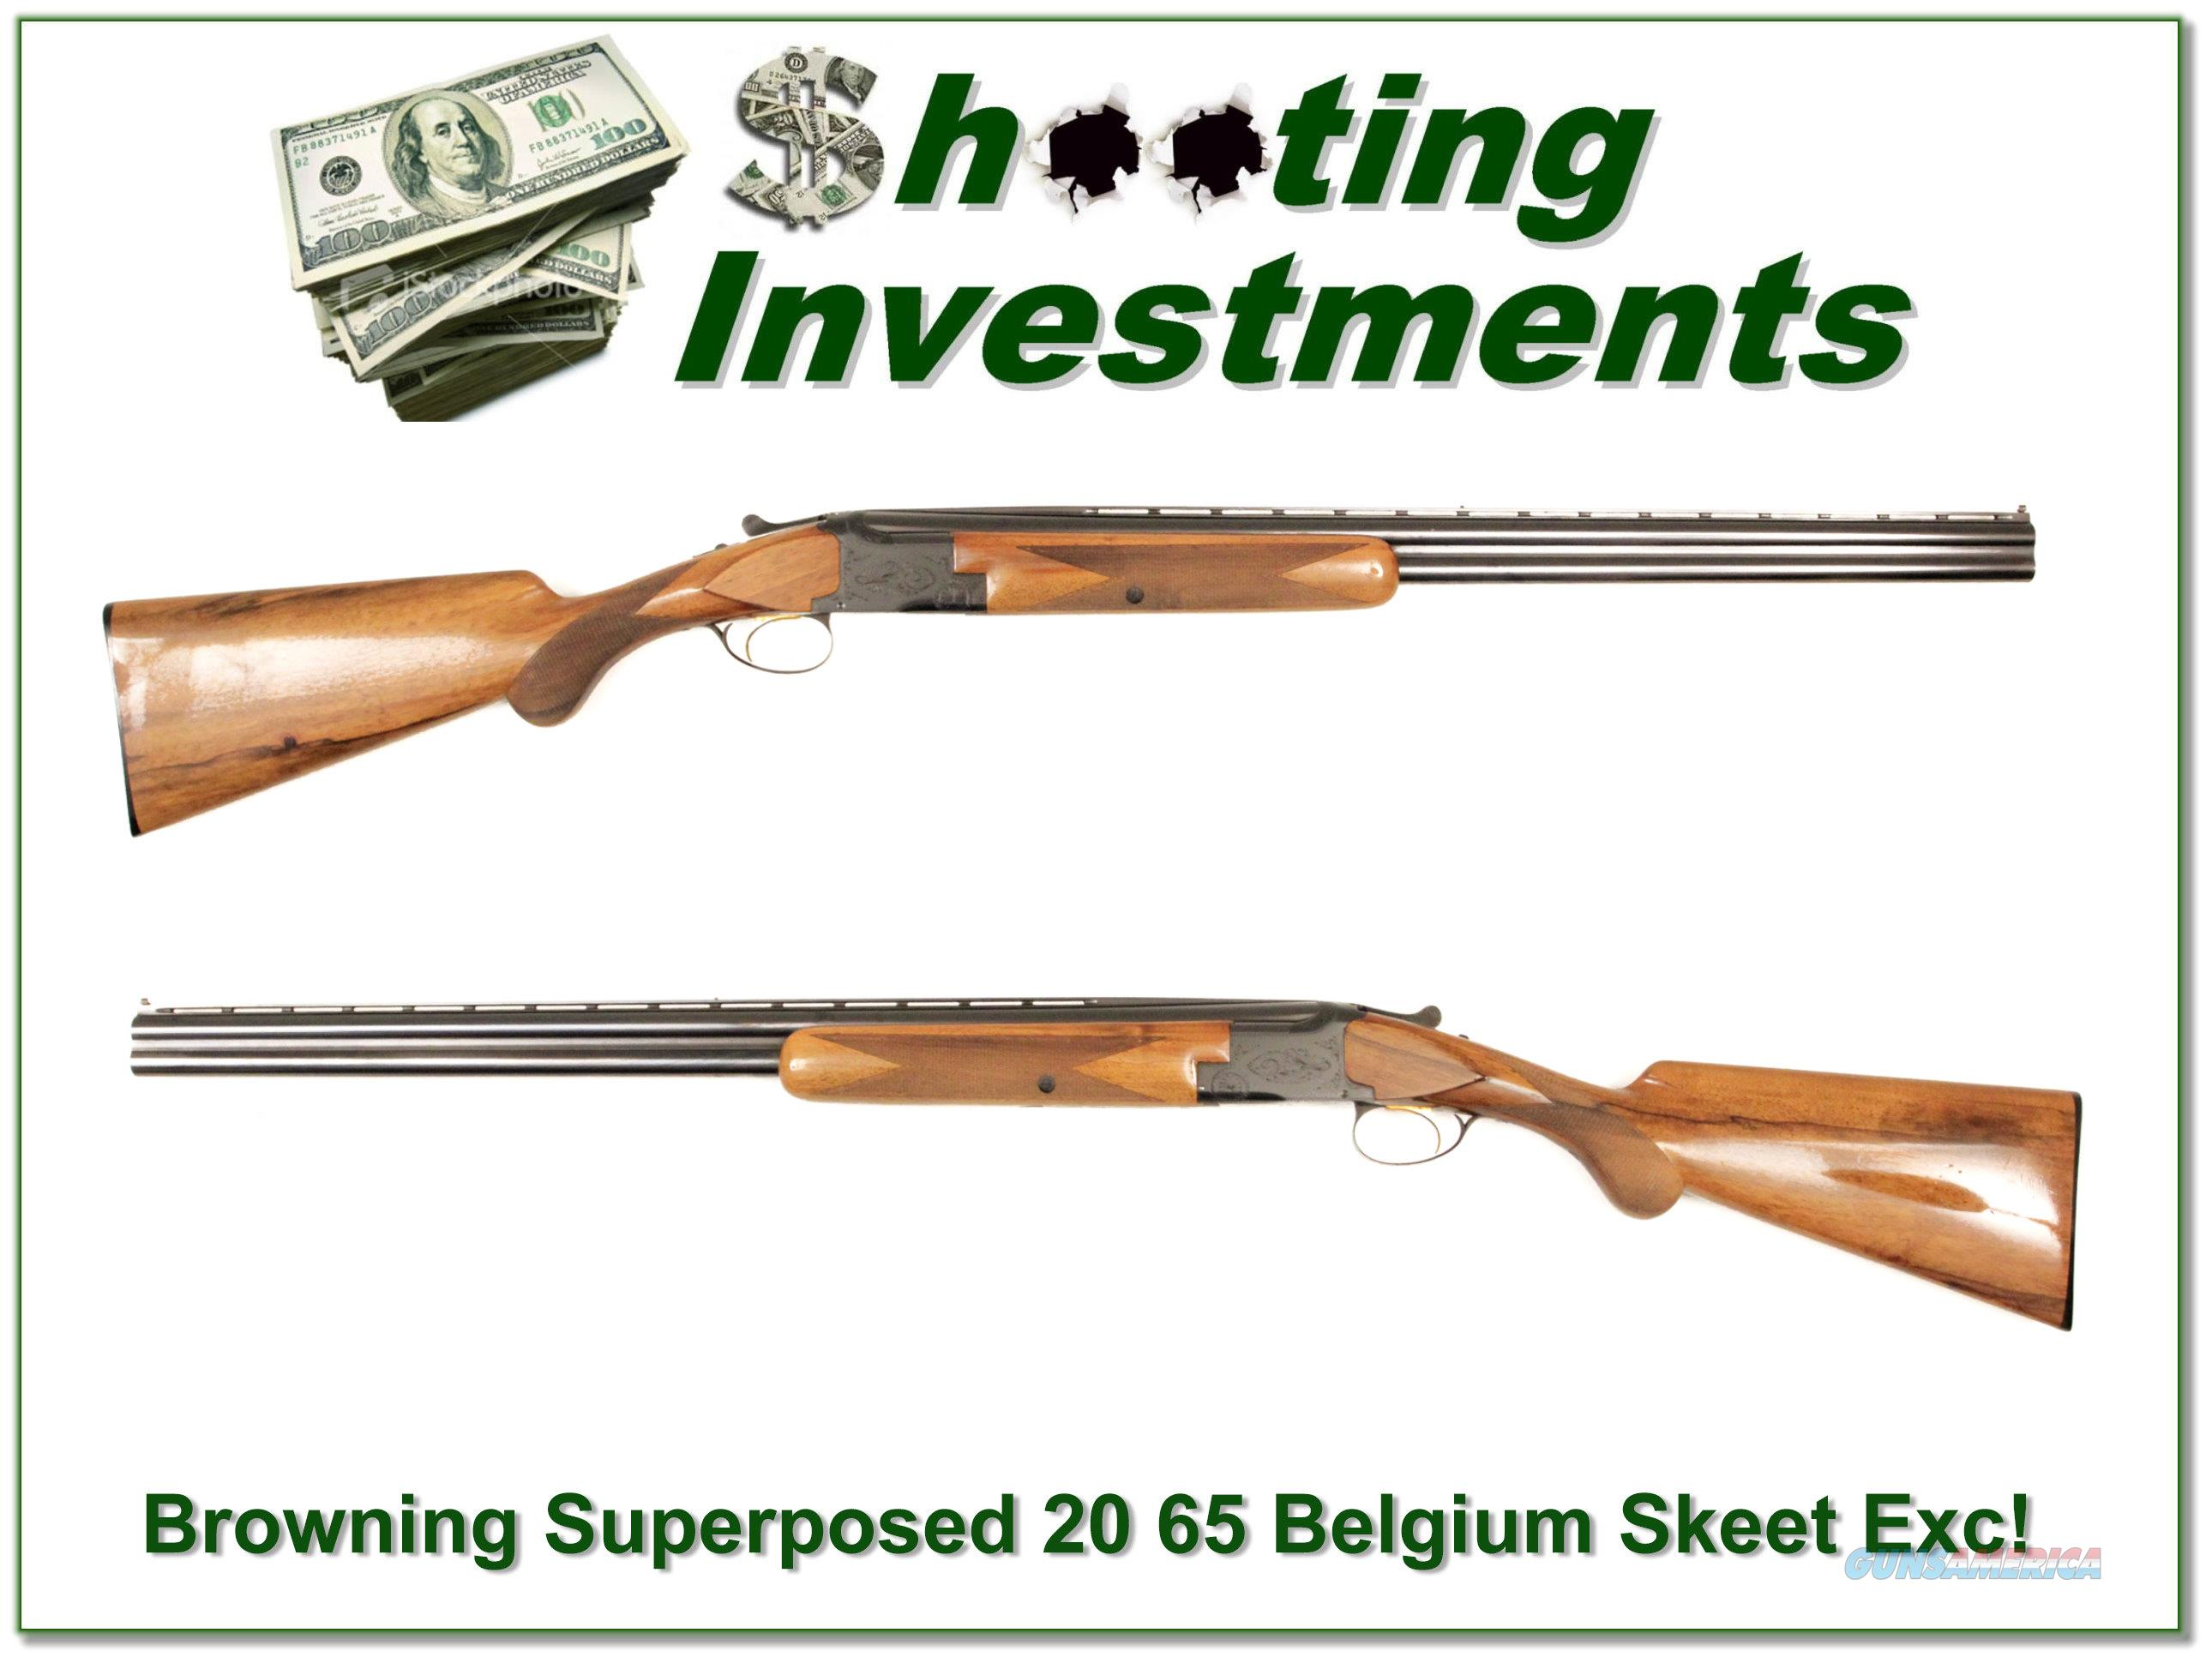 Browning Superposed 20 Gauge 65 Belgium 26in Skeet!  Guns > Shotguns > Browning Shotguns > Over Unders > Belgian Manufacture